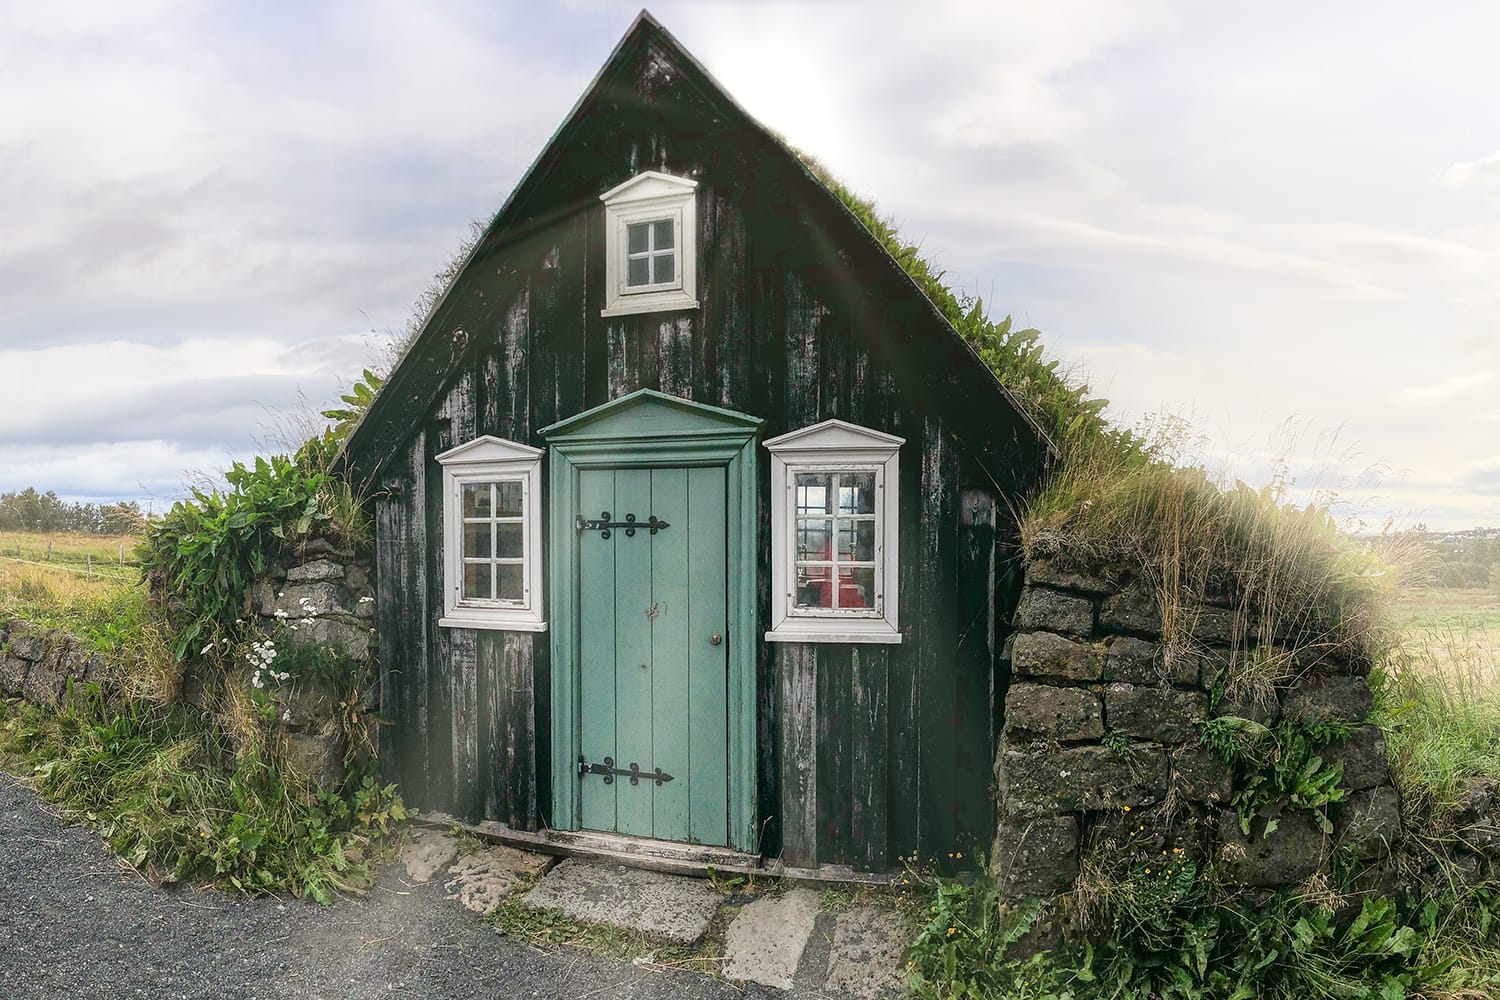 Arbaer Open Air Museum with classic Icelandic Wooden Houses.